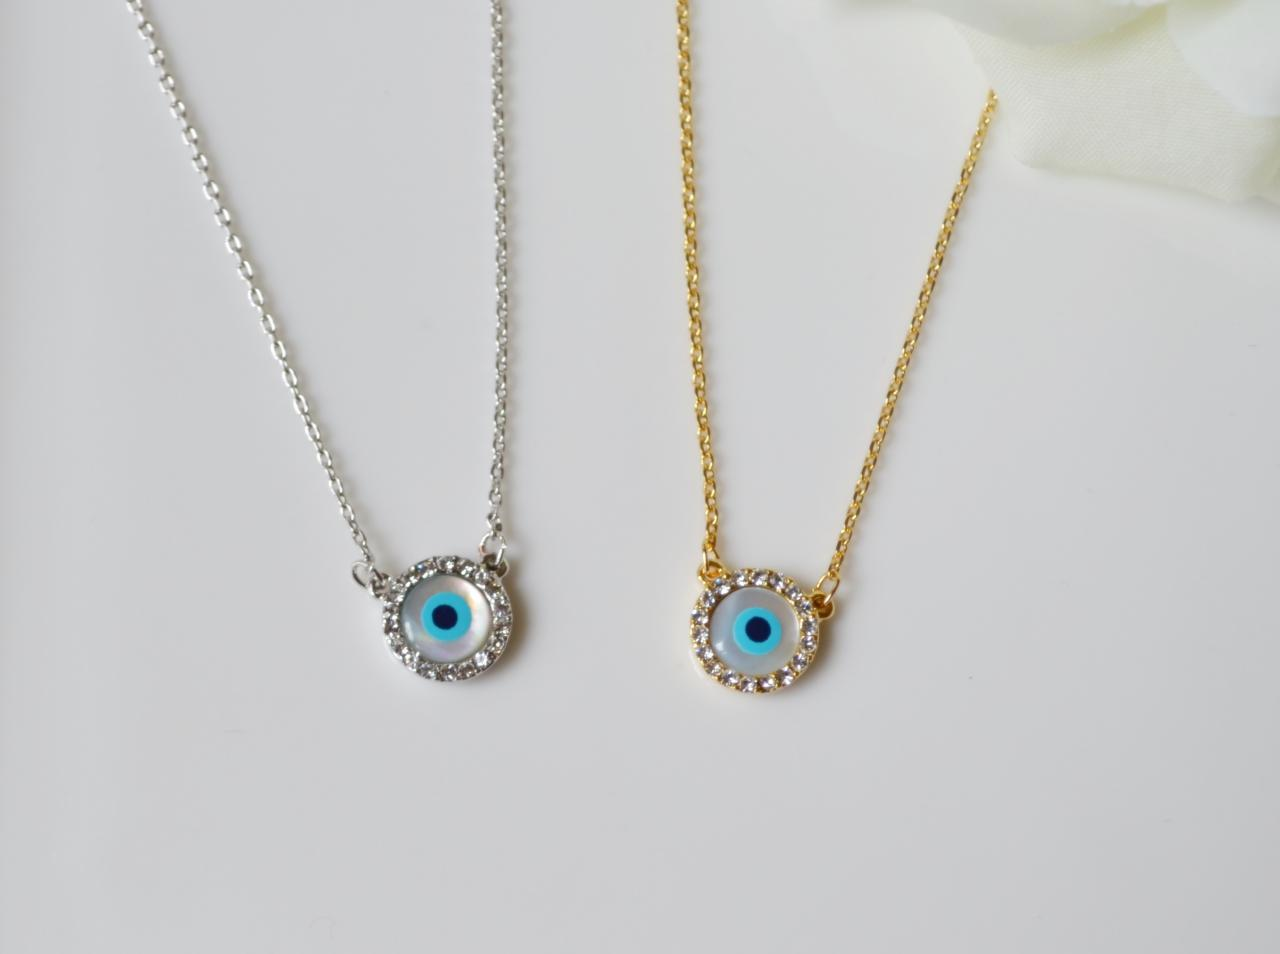 Evil eye necklace,eye necklace,protection jewelry